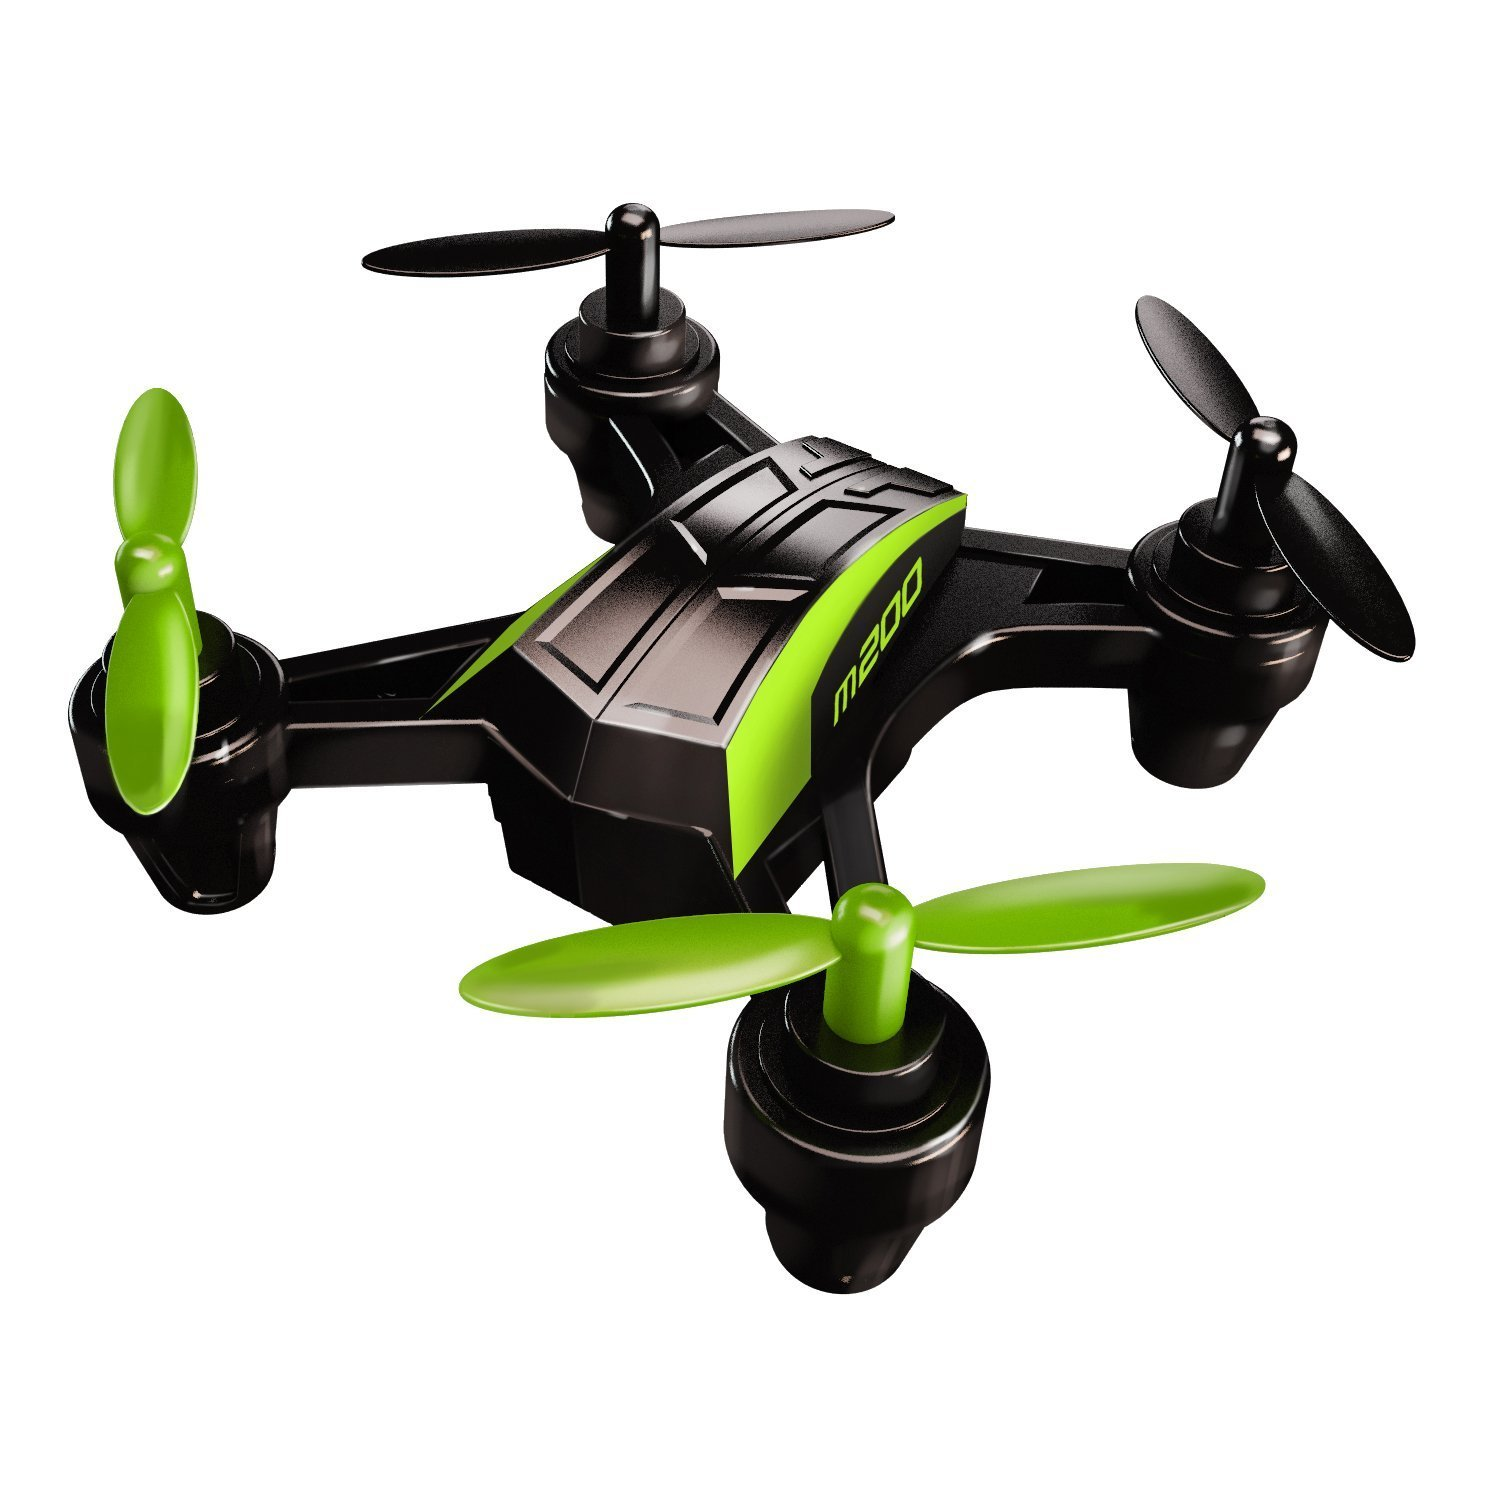 Sky Viper Nano Drone (M200) Vehicle (Discontinued by manufacturer ...